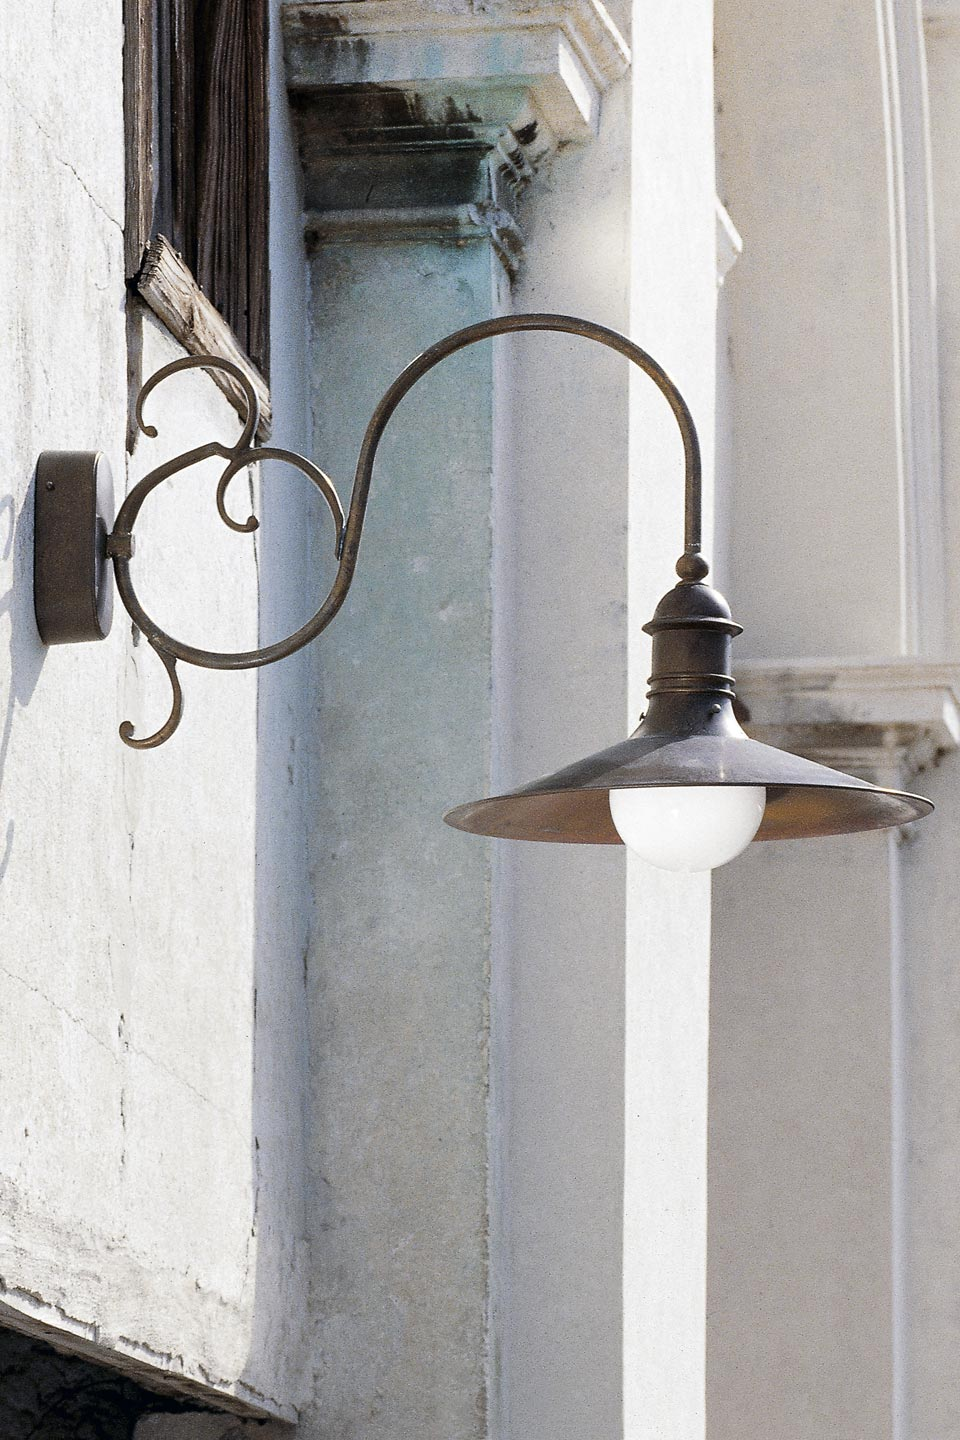 patinated brass wall lamp conical reflector